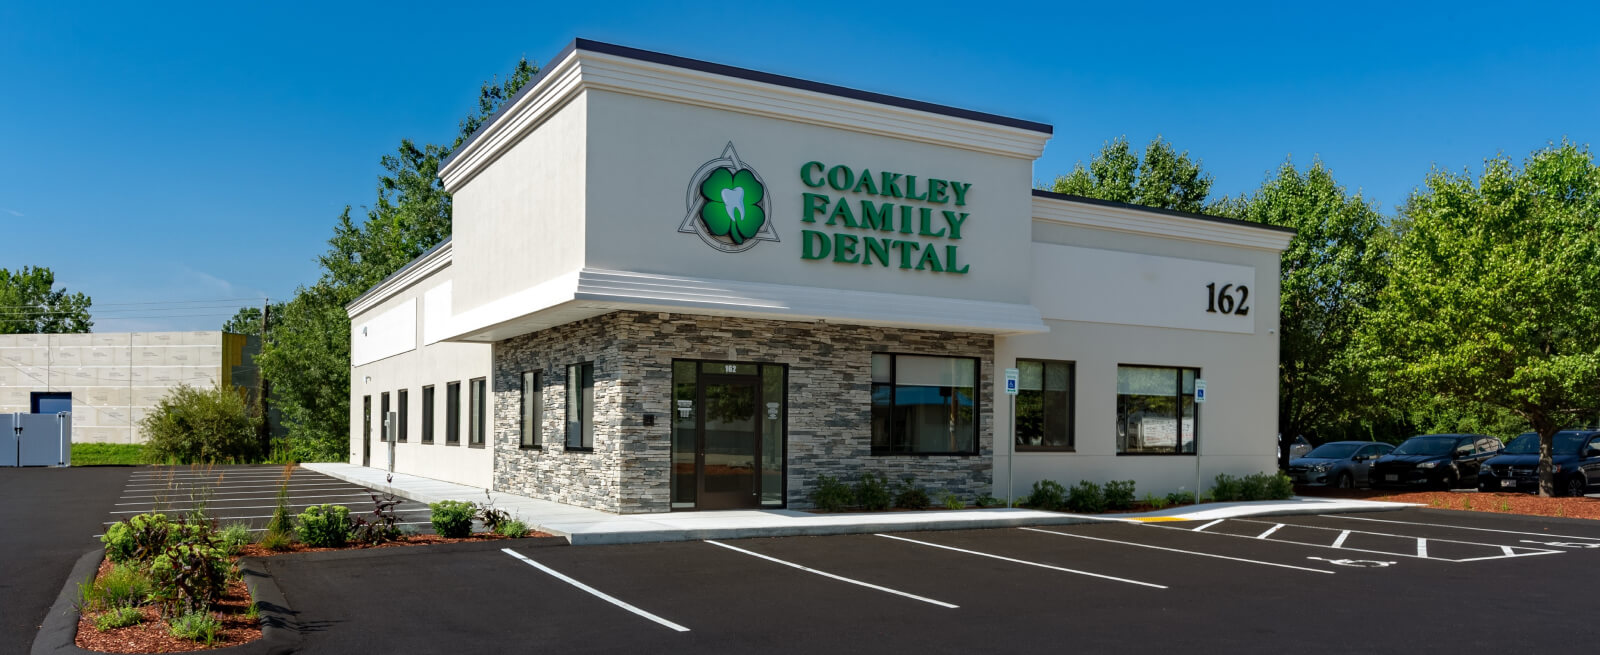 photo of the front of Coakley Family Dental facility, a completed McCarty Companies construction project